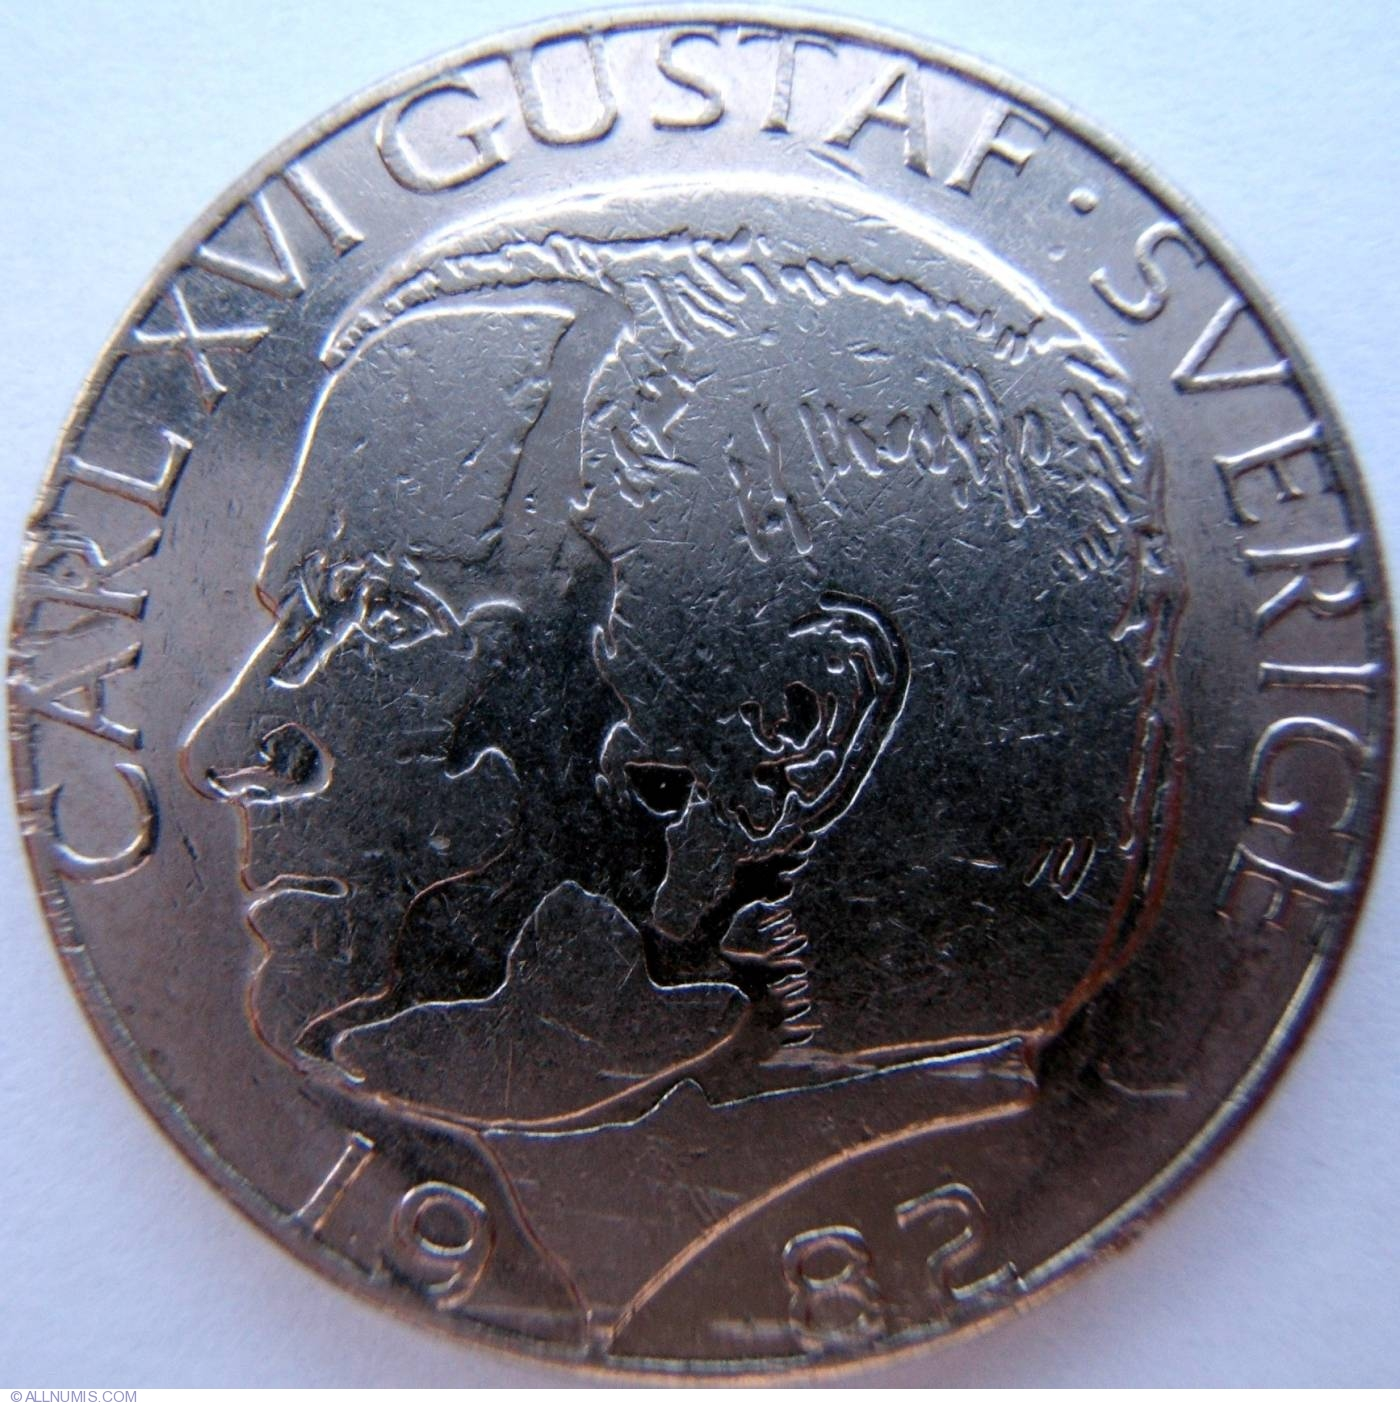 Coin of 1 Krona 1982 from Sweden - ID 3717